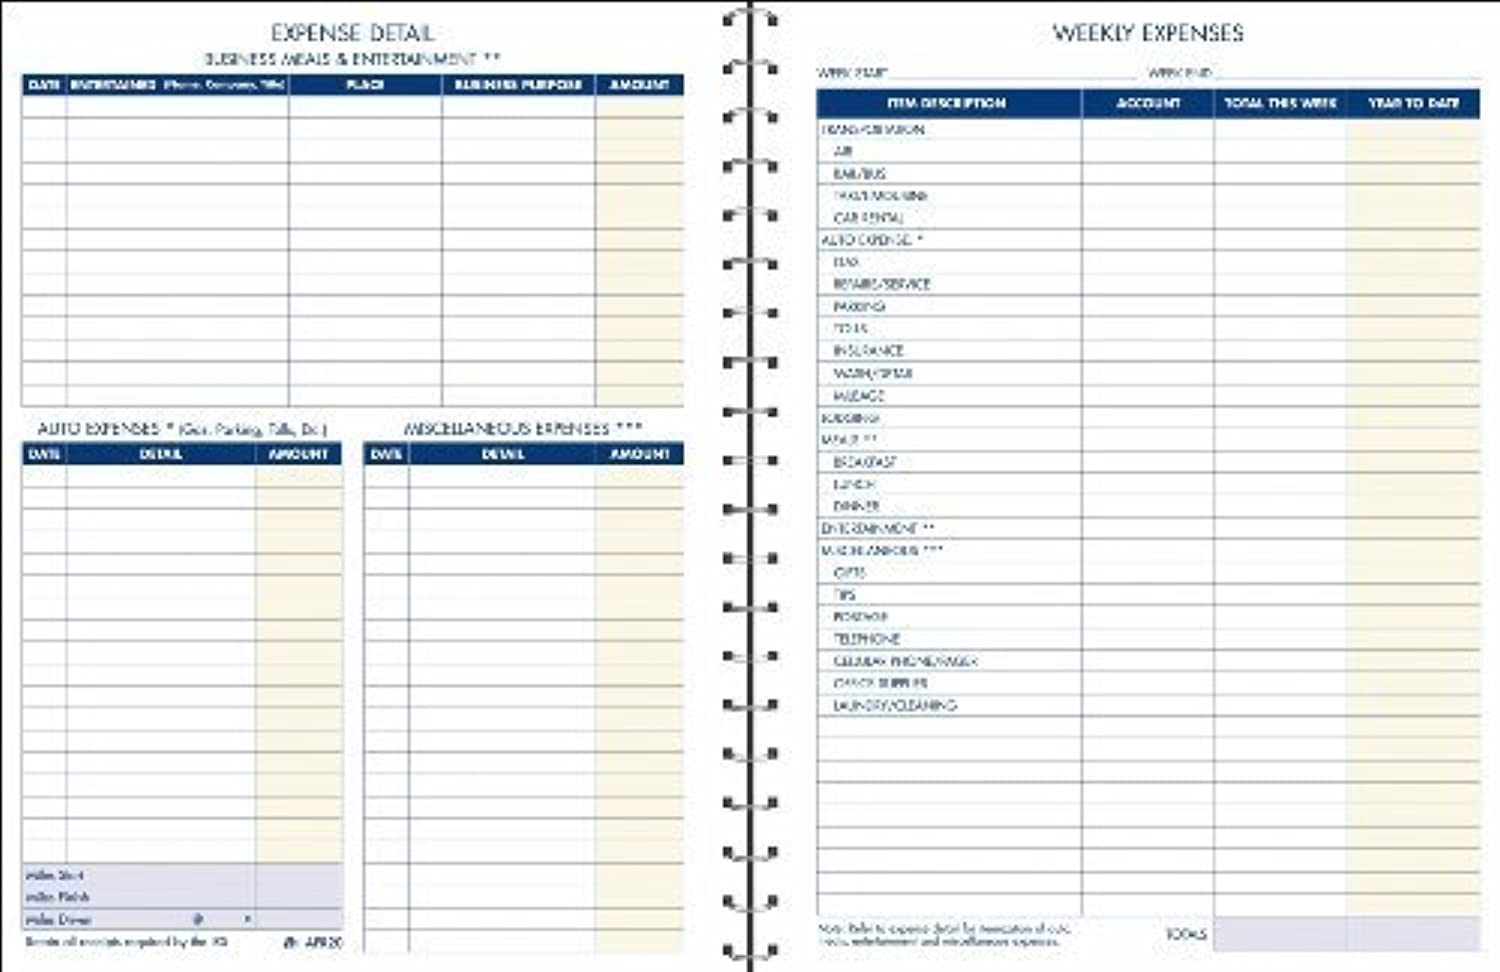 Adams Kosten Konto Record Book, Spiralbindung, 21,6 x x x 27,9 cm, Clear (afr20) by TOPS Business Forms, Inc. B00NJ66ZCE | Neue Produkte im Jahr 2019